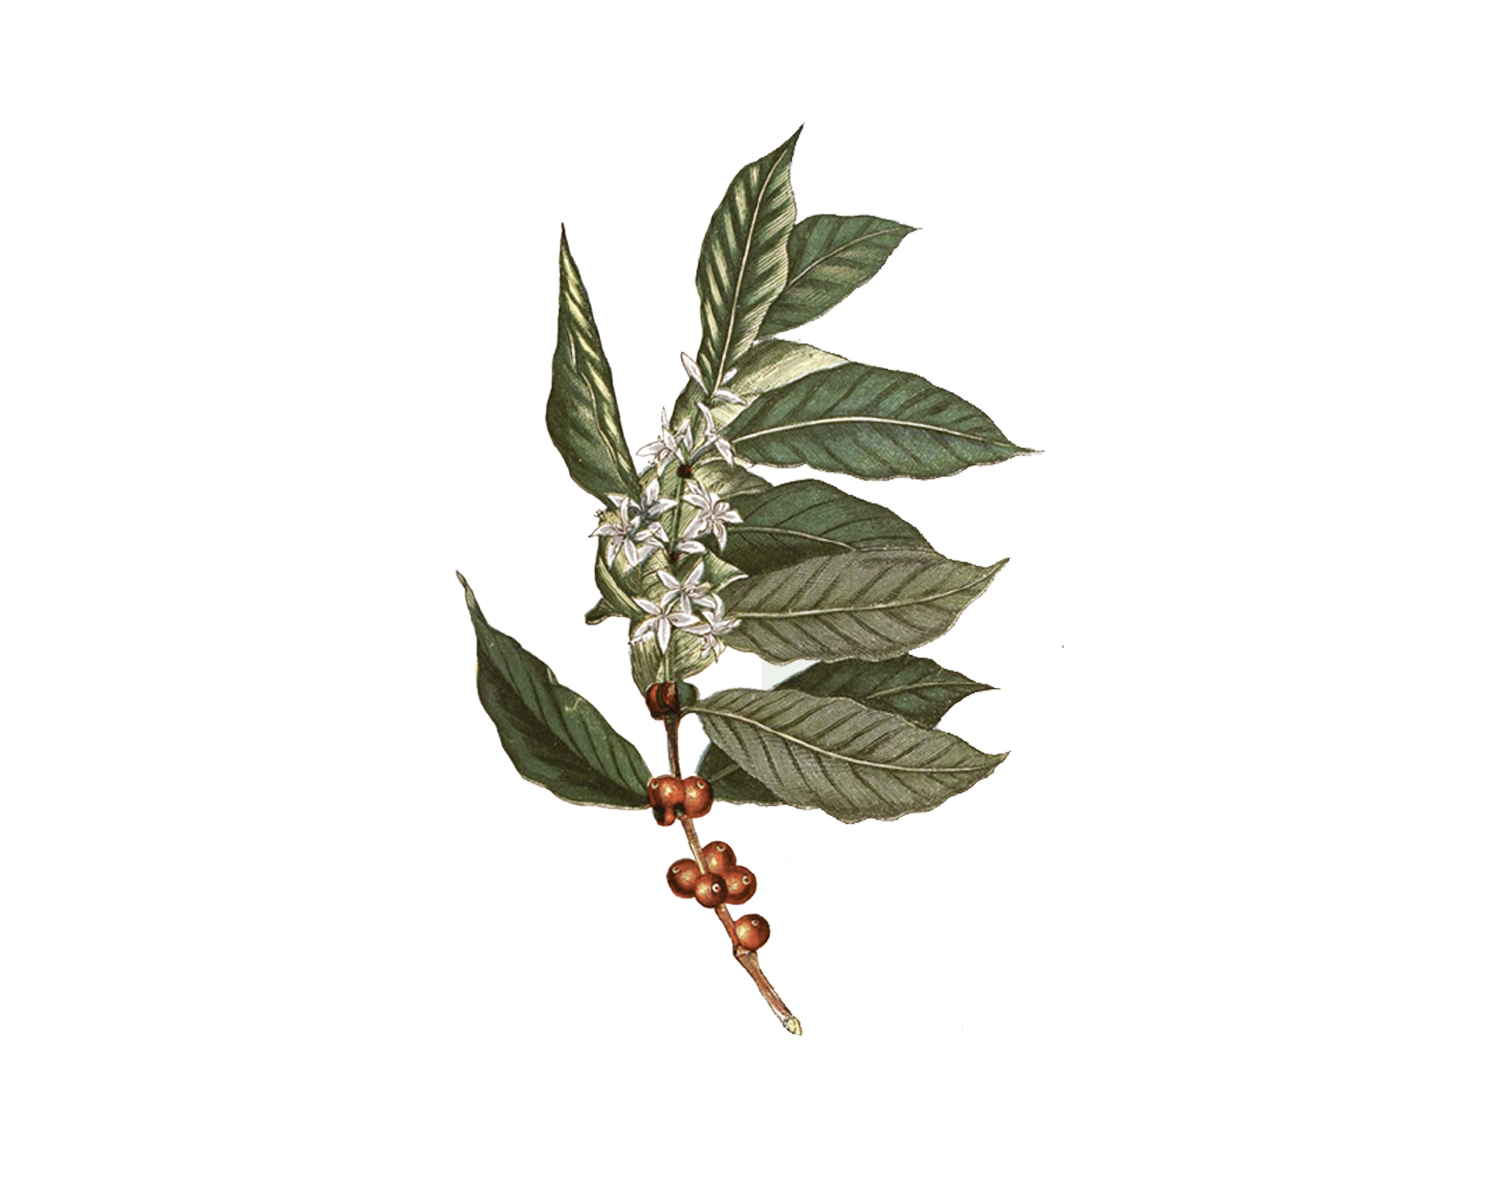 Coffea Arabica:  Arabica coffee is believed to have first been cultivated in North Africa and the Middle East before the 12th Century. It spread to Colombia and South America in 1790.